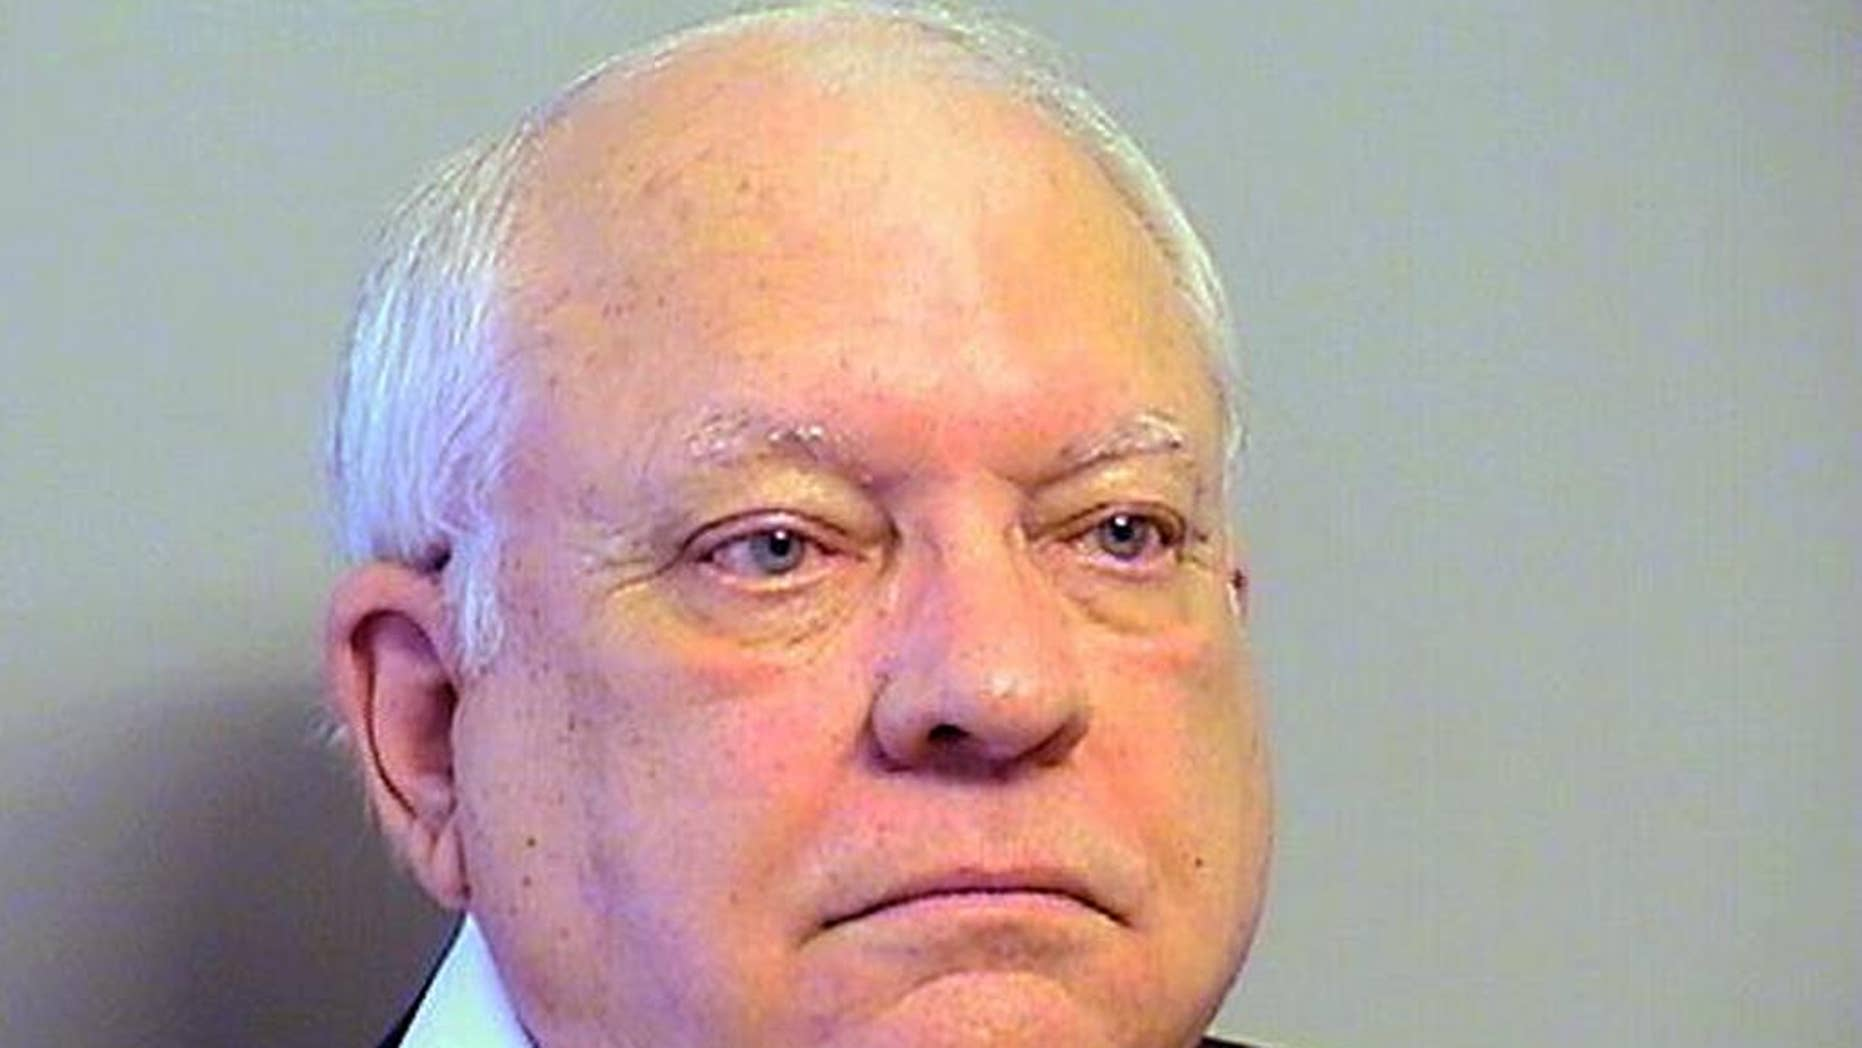 FILE - This Tuesday, April 14, 2015 file photo provided by the Tulsa County, Oklahoma, Sheriff's Office shows Robert Bates. Defense attorneys released some of the training records Saturday April 18, 2015 for a 73-year-old volunteer sheriff's deputy charged with manslaughter in the fatal shooting of an unarmed suspect in Oklahoma. The records for Robert Bates include certificates showing what training he received, job evaluation reports and weapons training and qualification records dating to 2008.  (Tulsa County Sheriff's Office via AP, File)